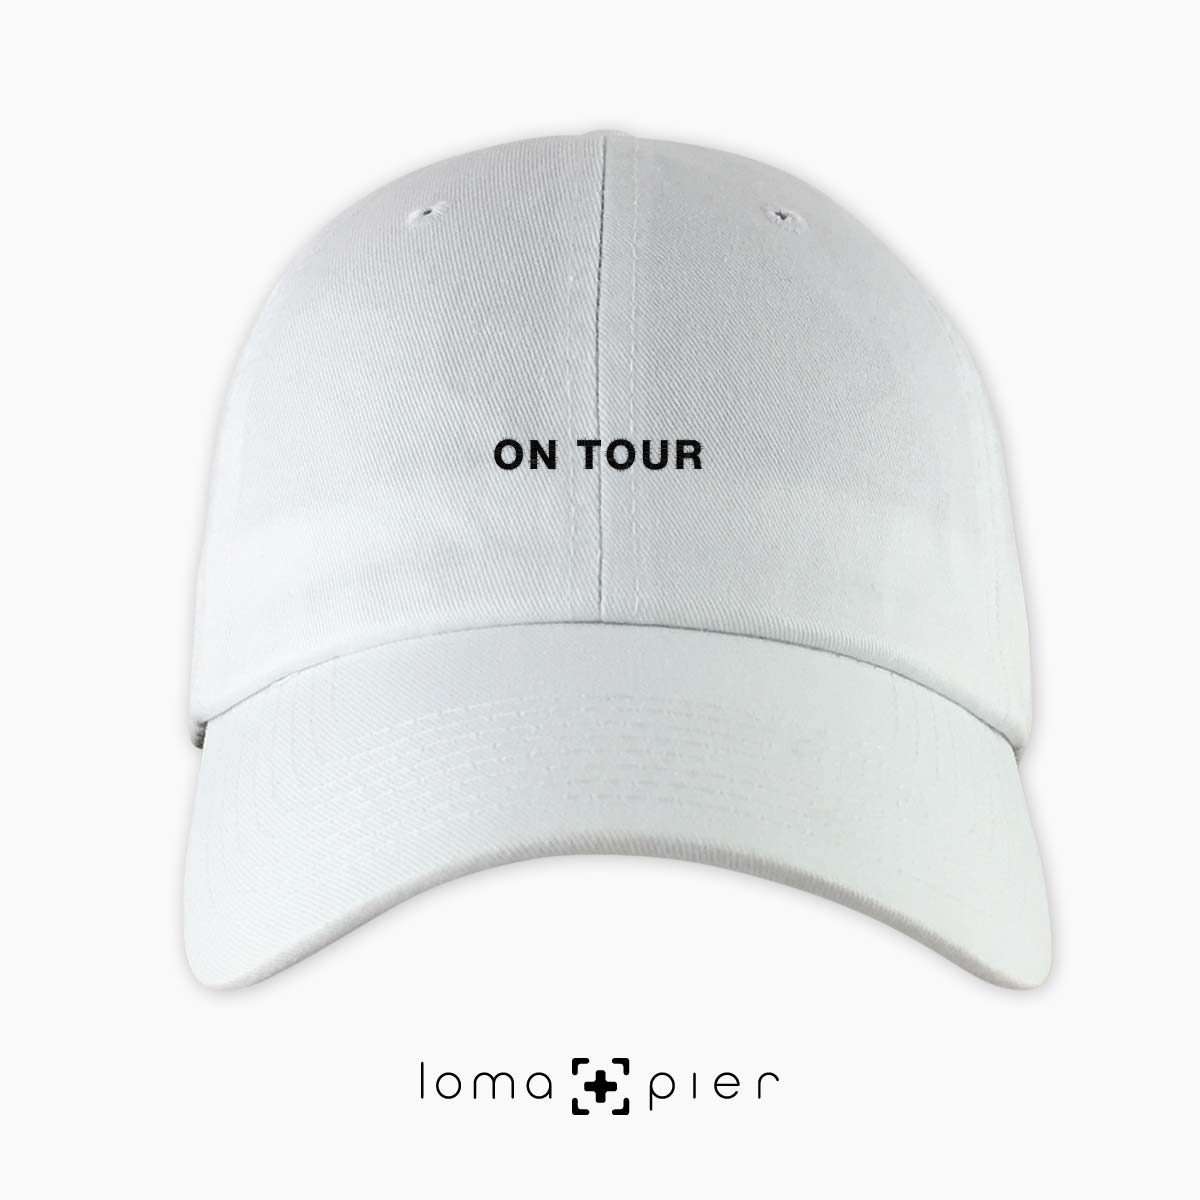 ON TOUR embroidered on a white unstructured dad hat by loma+pier hat store made in the USA